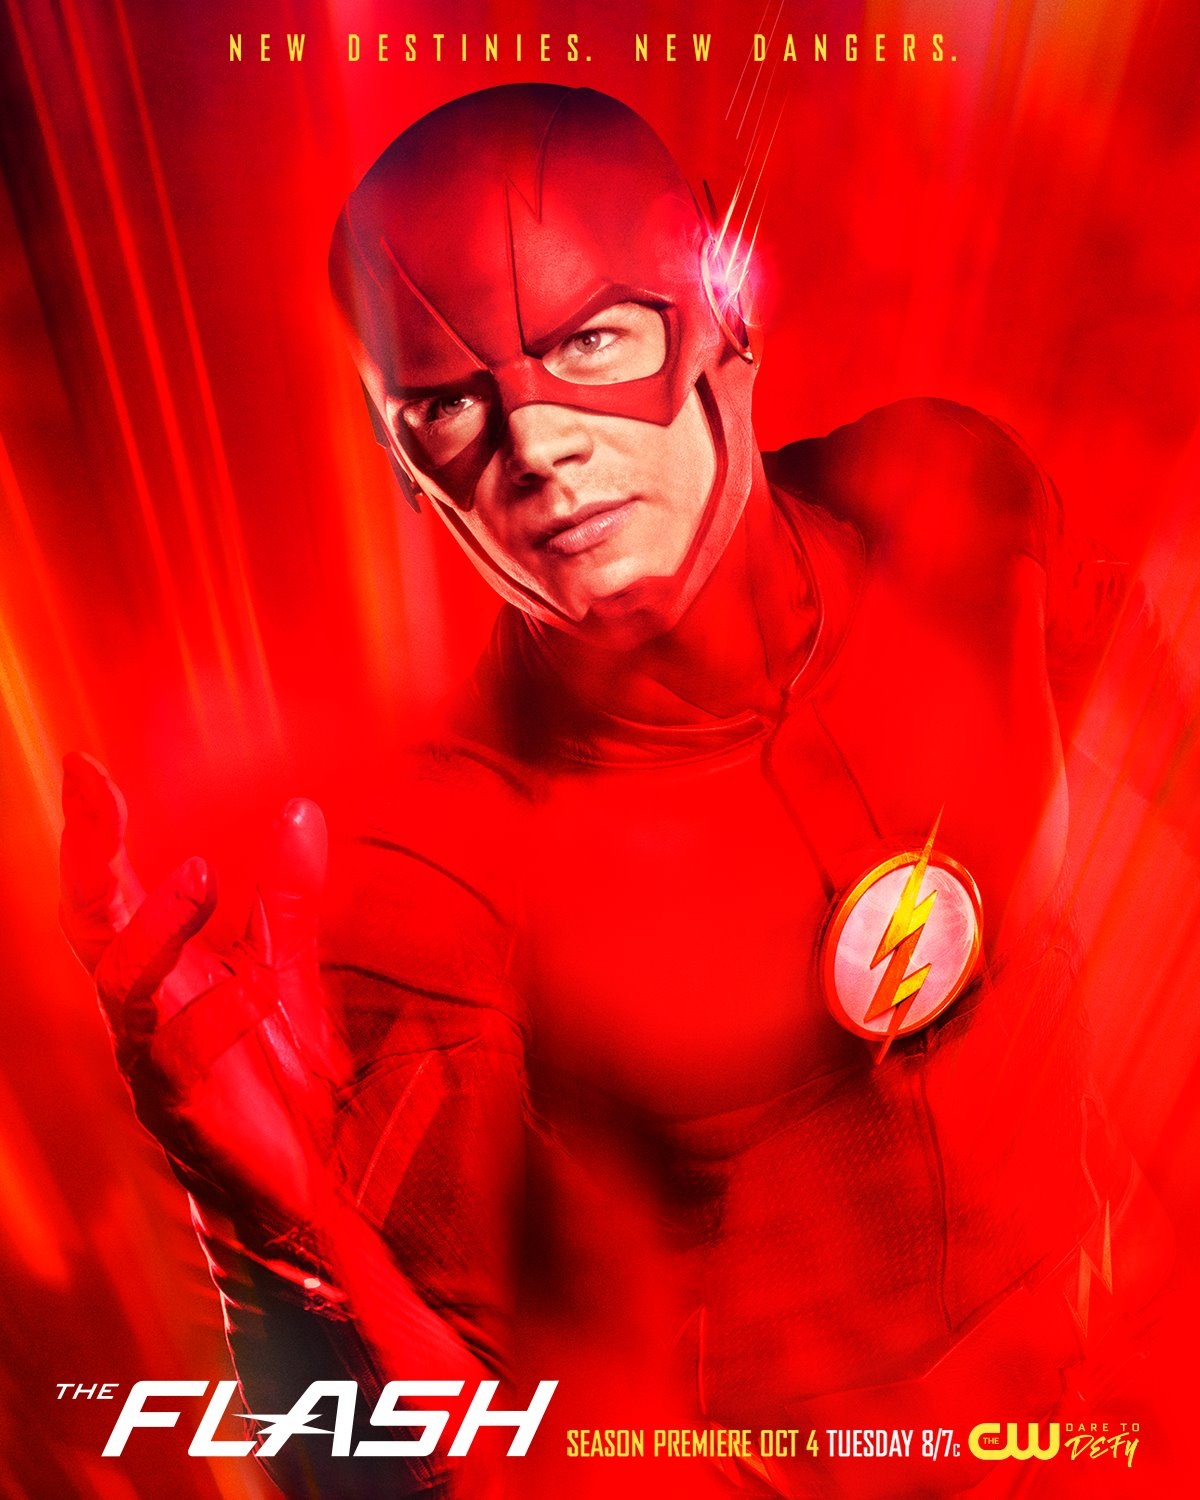 The Flash Season 3 Episode 6 Stream